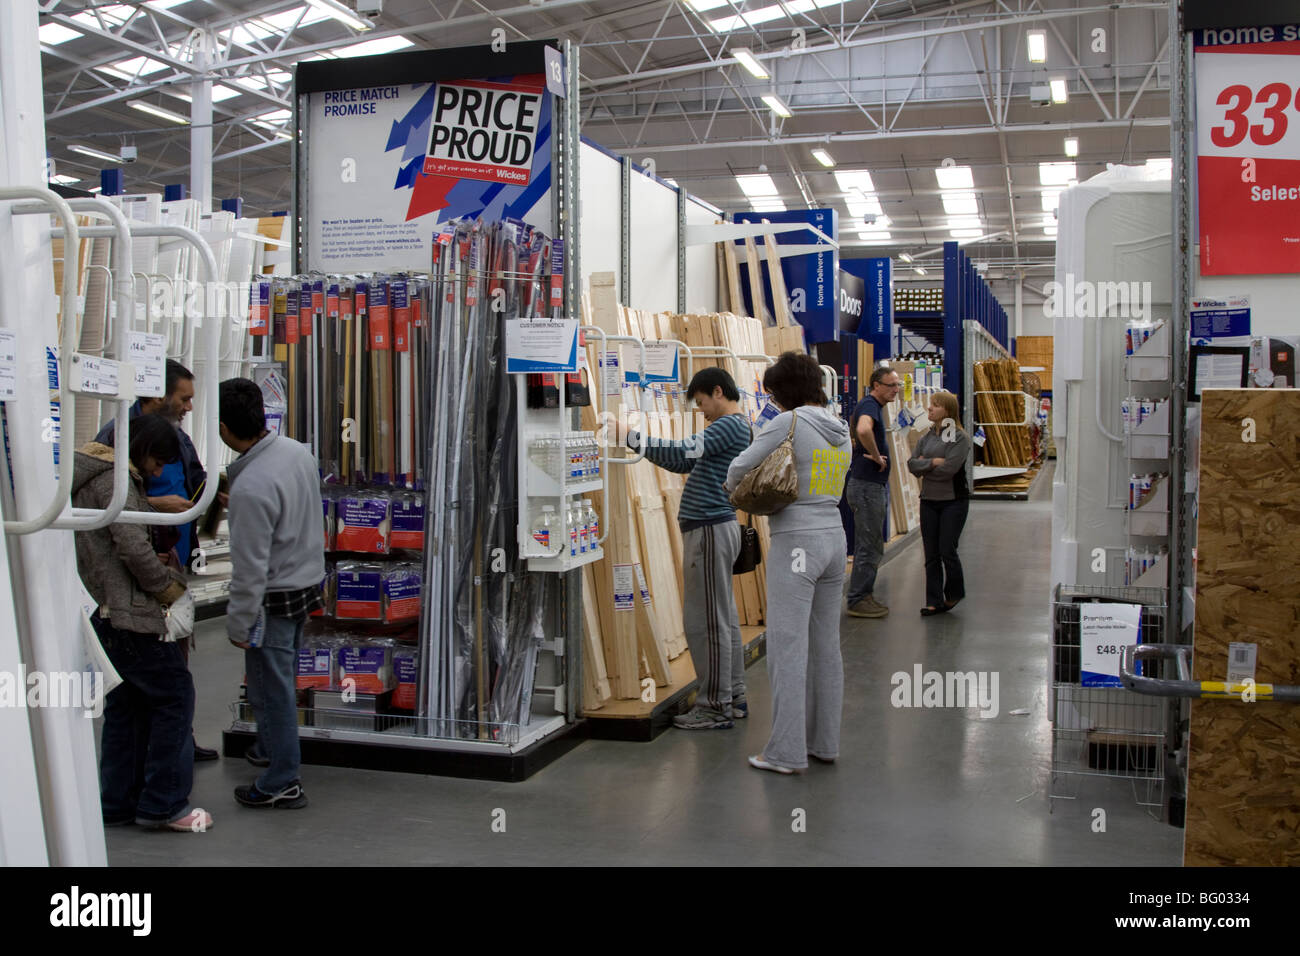 Diy store stock photos diy store stock images alamy wickes do it yourself superstore edmonton london stock image solutioingenieria Gallery